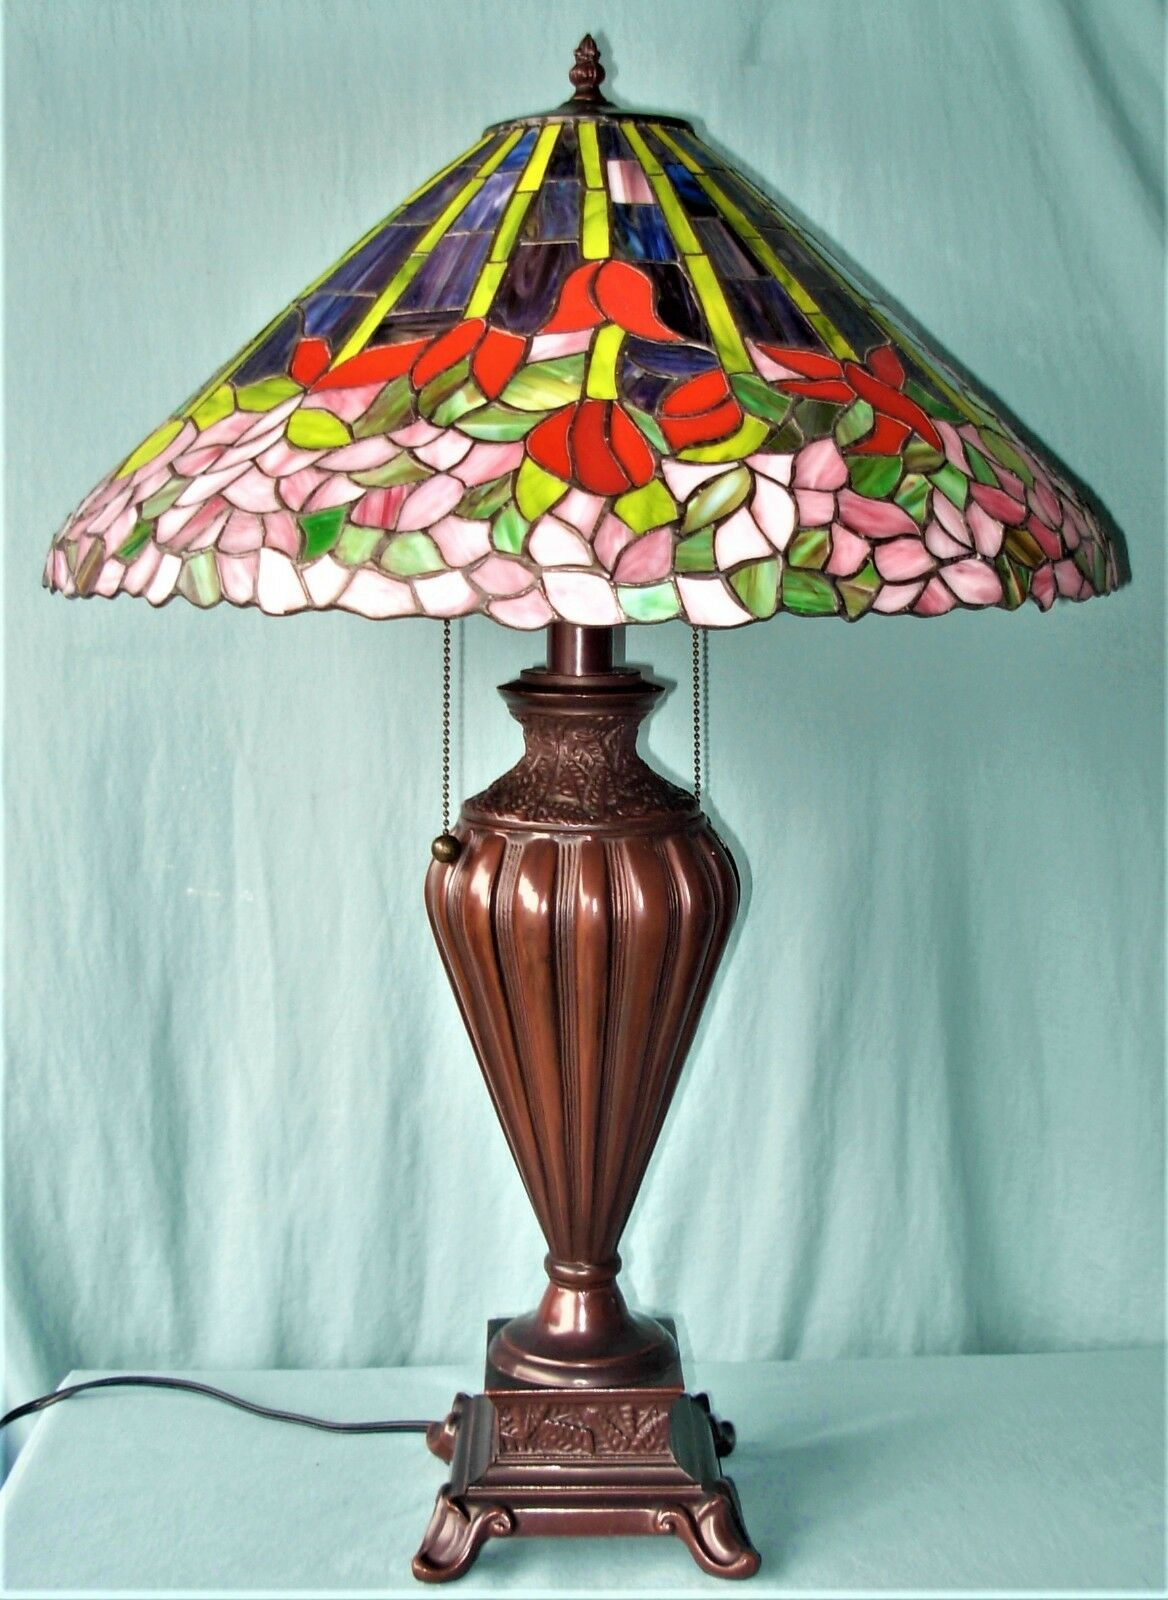 Details About Tiffany Style Large Multi Colored Stained Glass Lamp Glass Lamp Tiffany Lamps Lamp